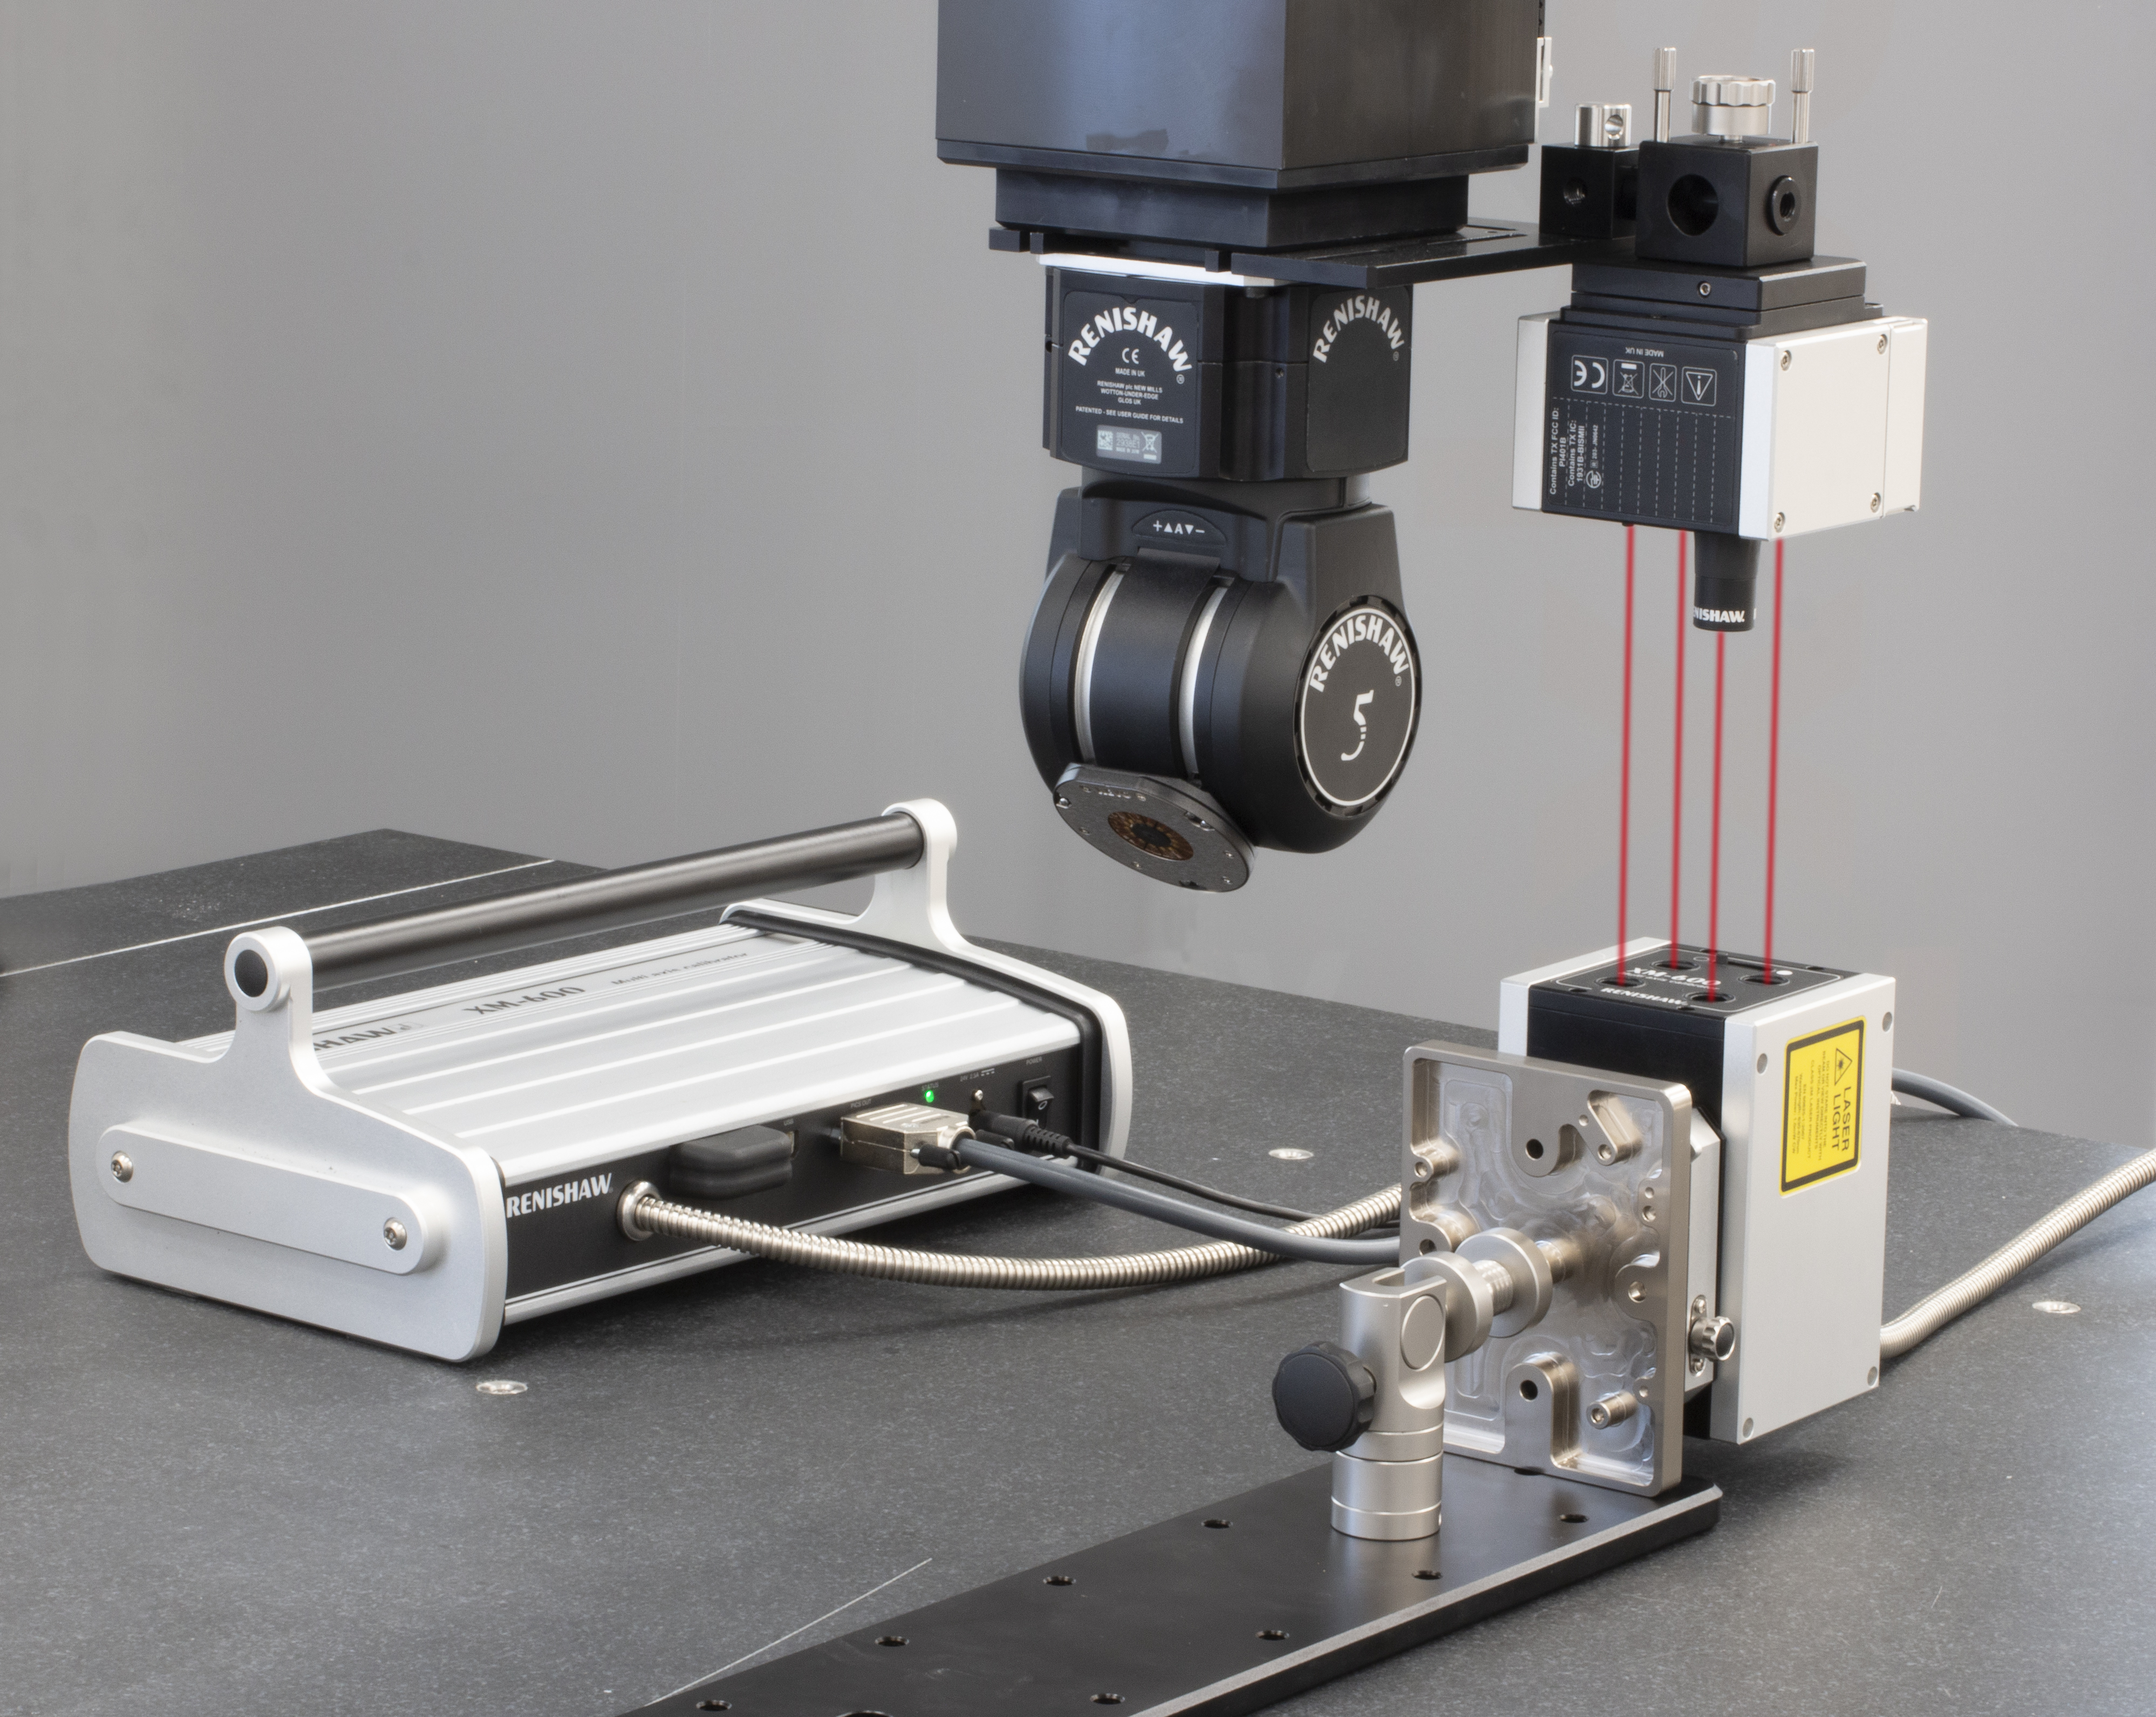 Renishaw XM-600 system enables faster and easier CMM error